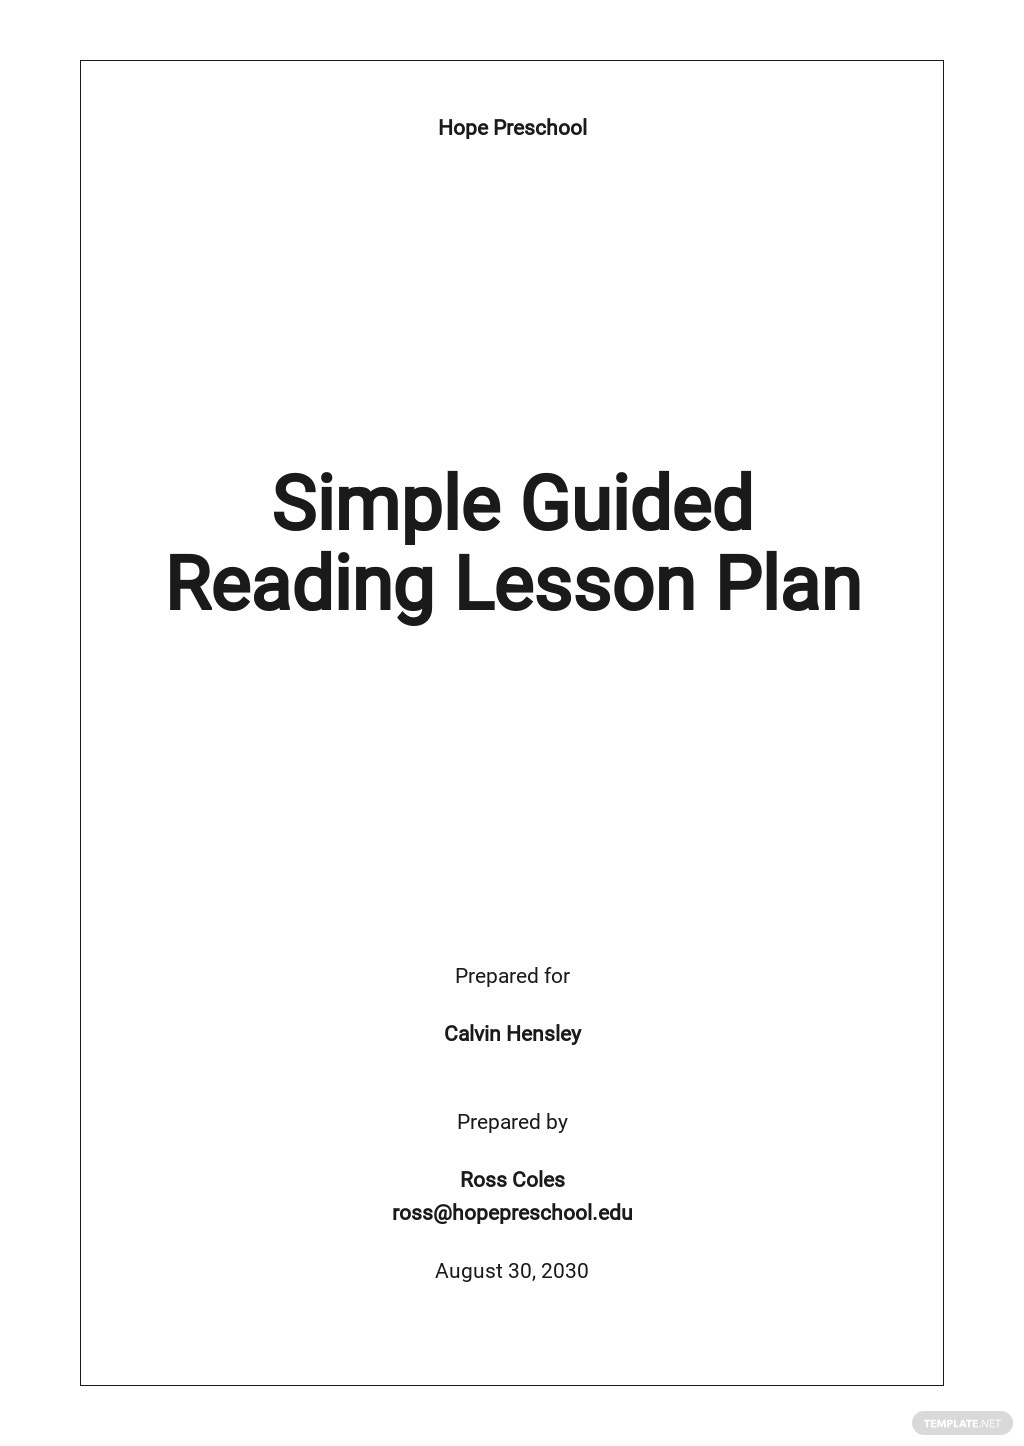 Simple Guided Reading Lesson Plan Template.jpe